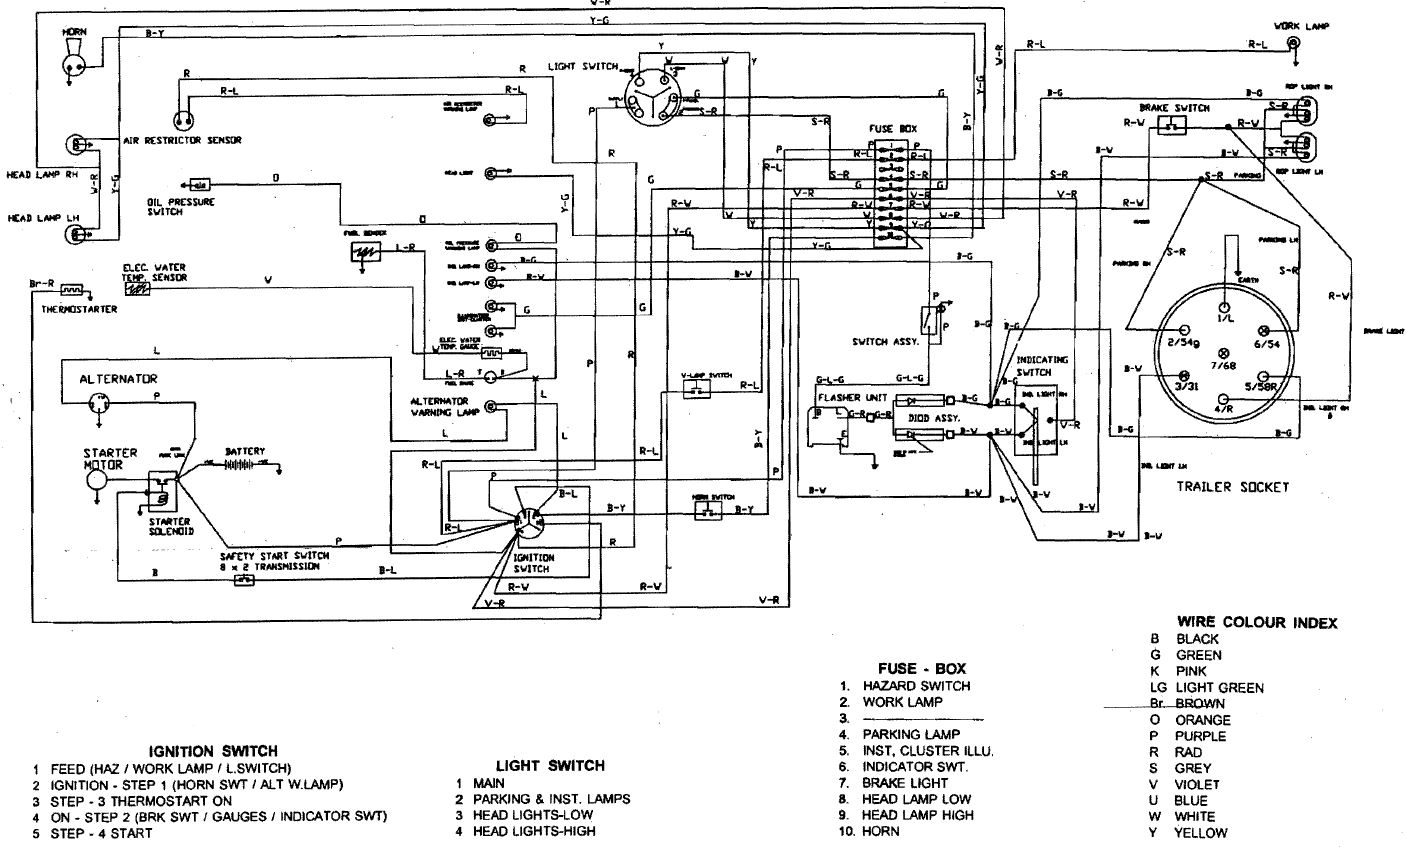 Ignition switch wiring diagram – L2550 Kubota Engine Diagram